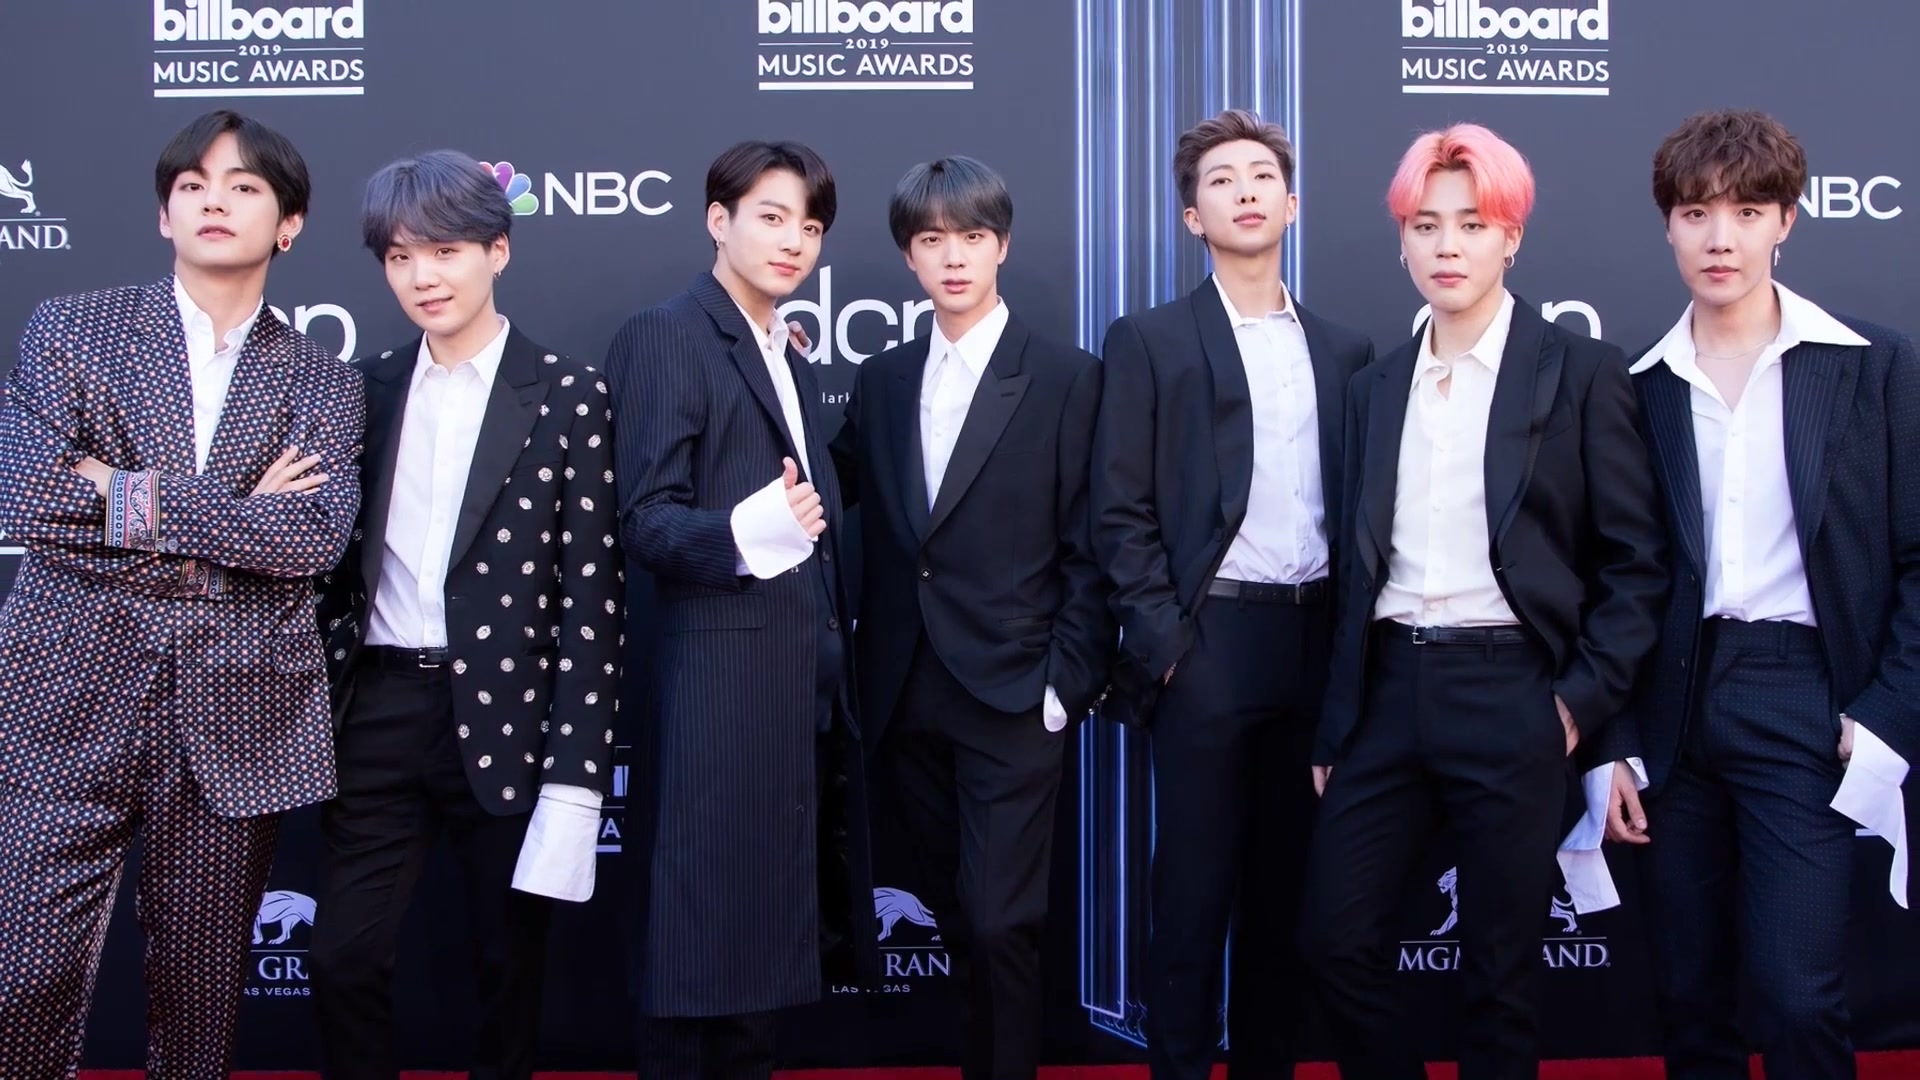 BTS on the Billboard Music Awards red carpet%2C 1 May 2019